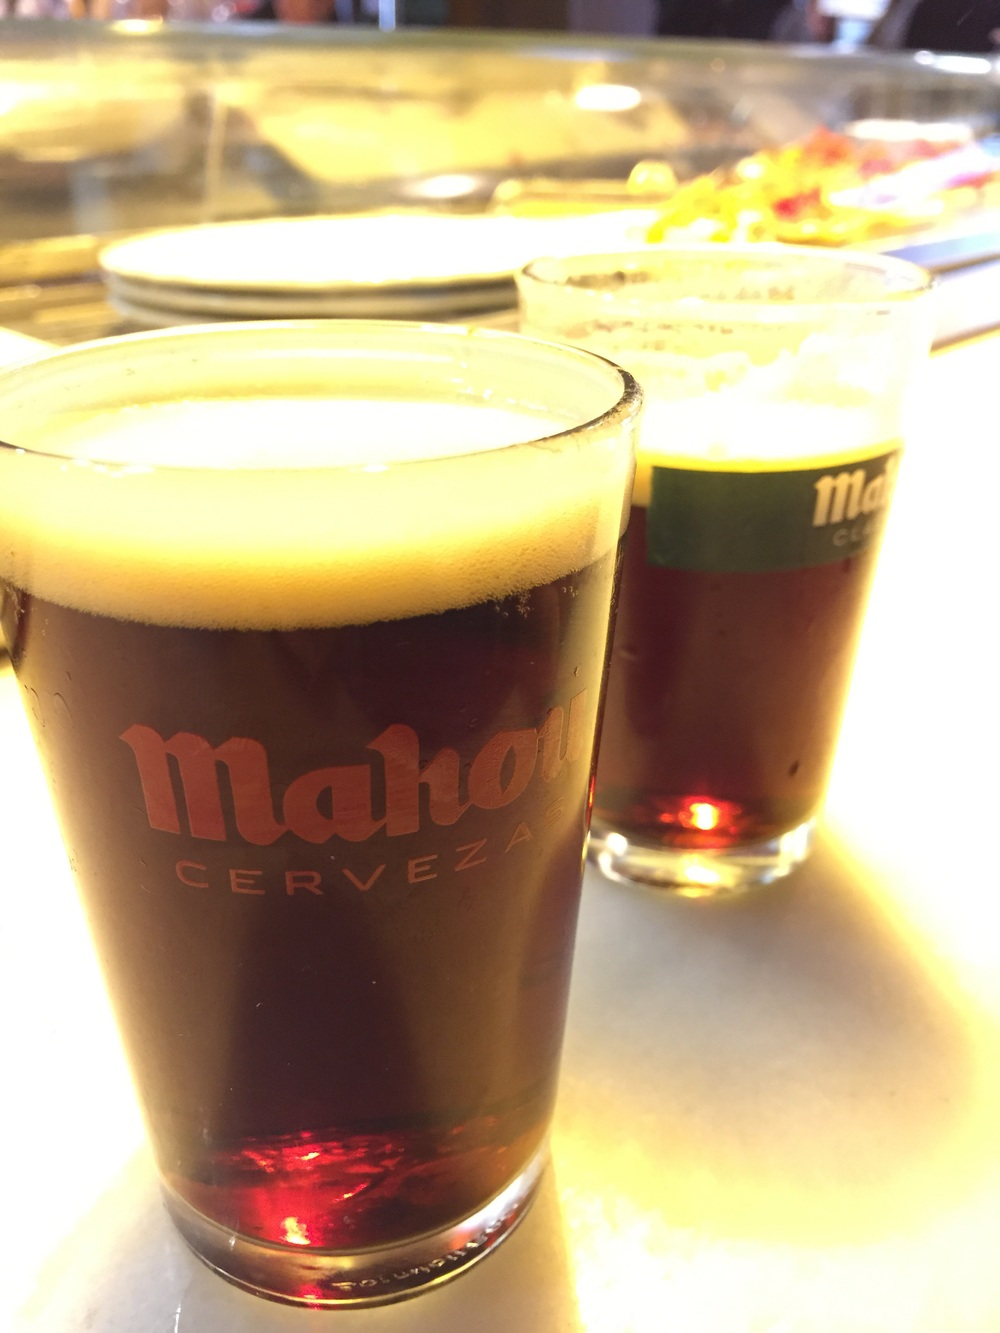 Mahou Negra: nutty, brown ale with hints of toffee. If you've had Rogue's Hazlenut brown nectar, this beer is not sweet or as nutty and higher on the IBU scale. So I really like it.